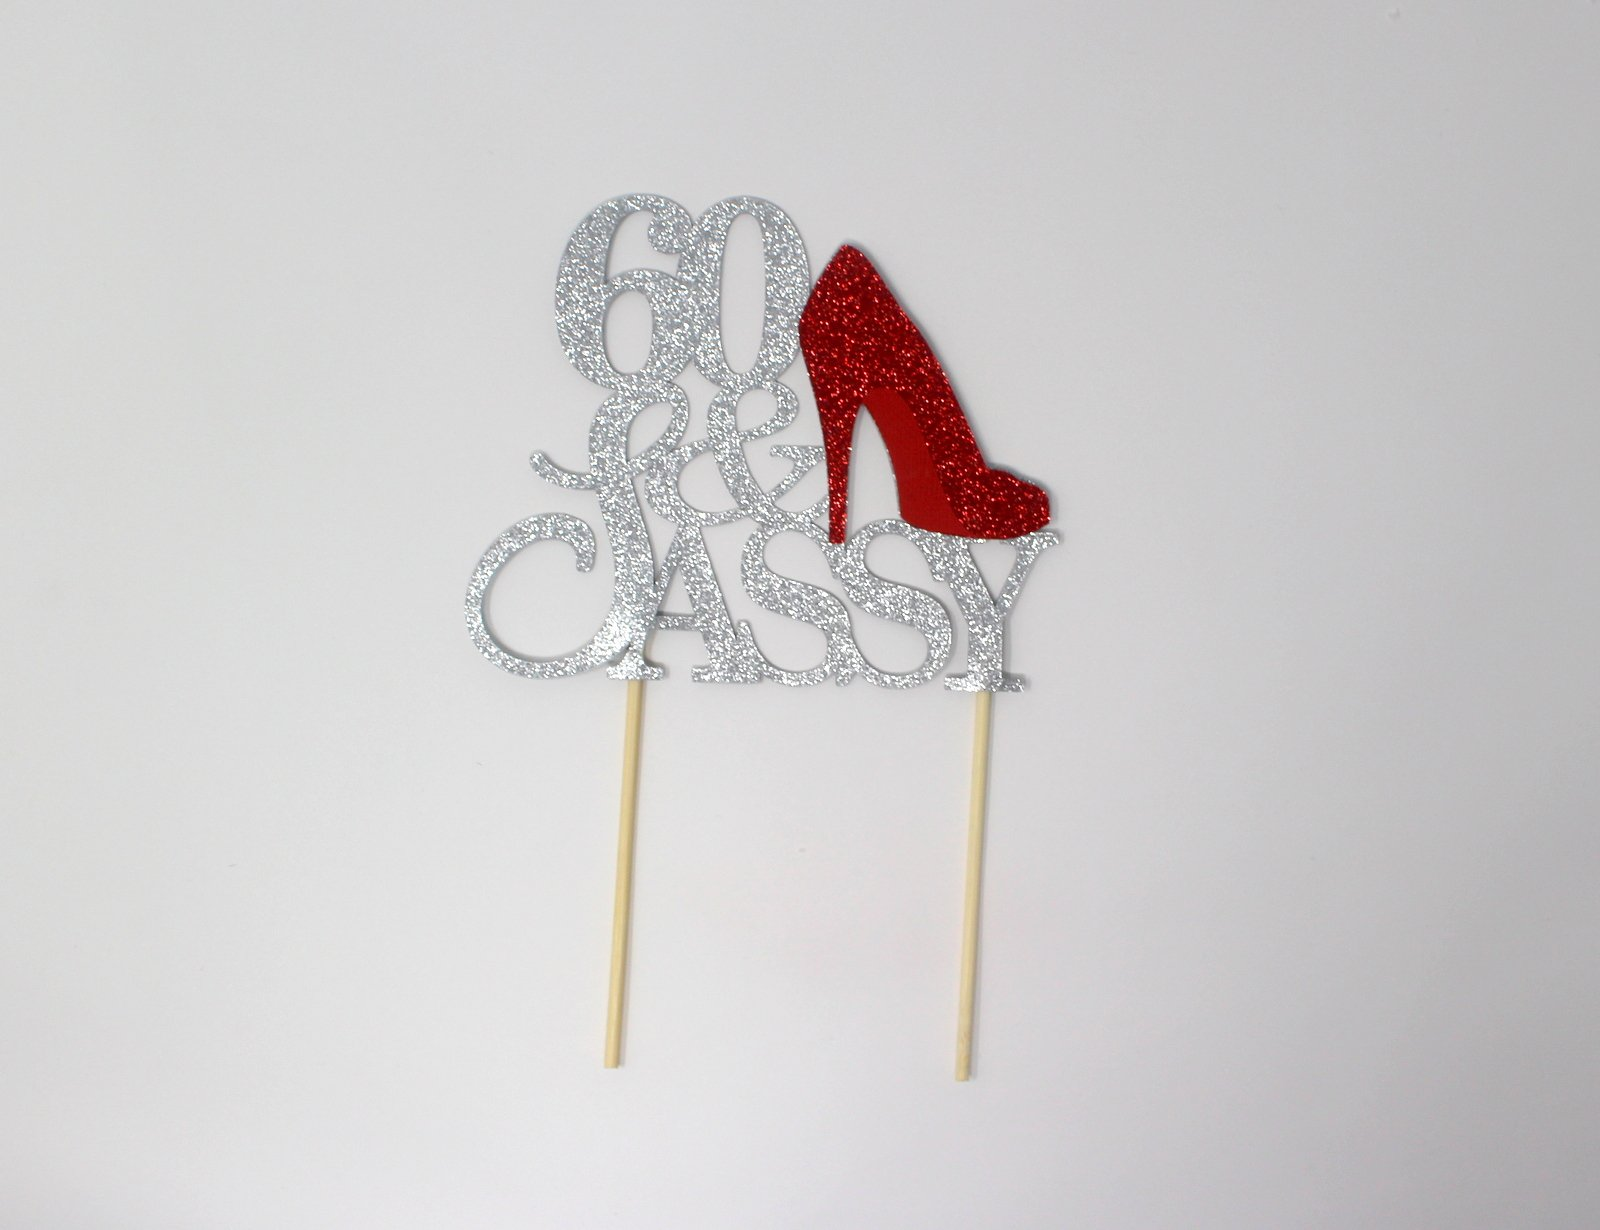 All About Details CAT60SASRE 60 and Sassy Cake Topper (Silver and Red), 6in Wide and 5in Tall with 2-pcs of 4in Wood skewers